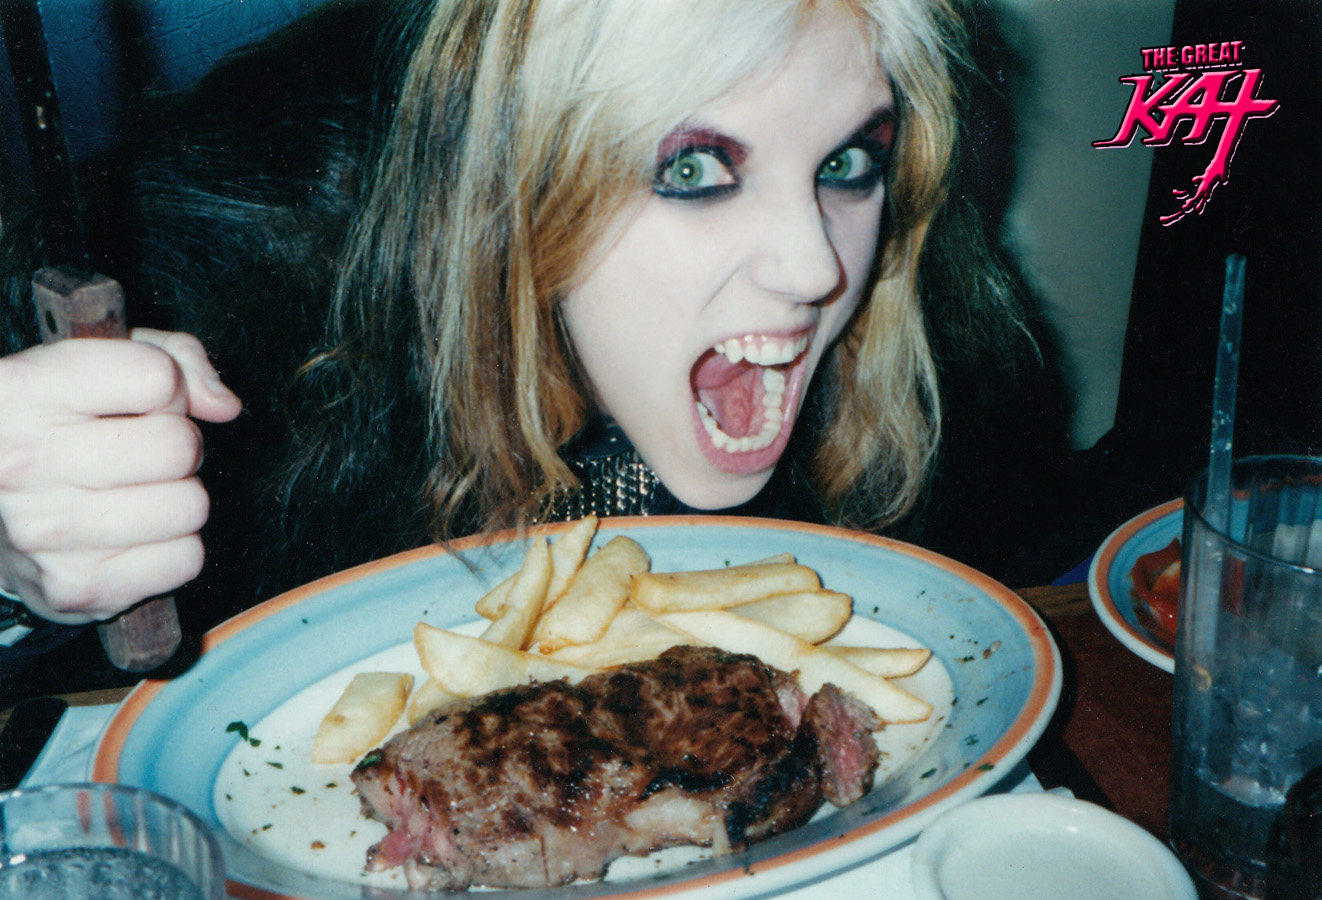 BEHIND THE SCENES - AFTER Grueling Shred Rehearsal: THE GREAT KAT, BLOODY MEAT LOVER, DEMOLISHES STEAK & FRIES! (STEAK NEVER HAD A CHANCE!)!